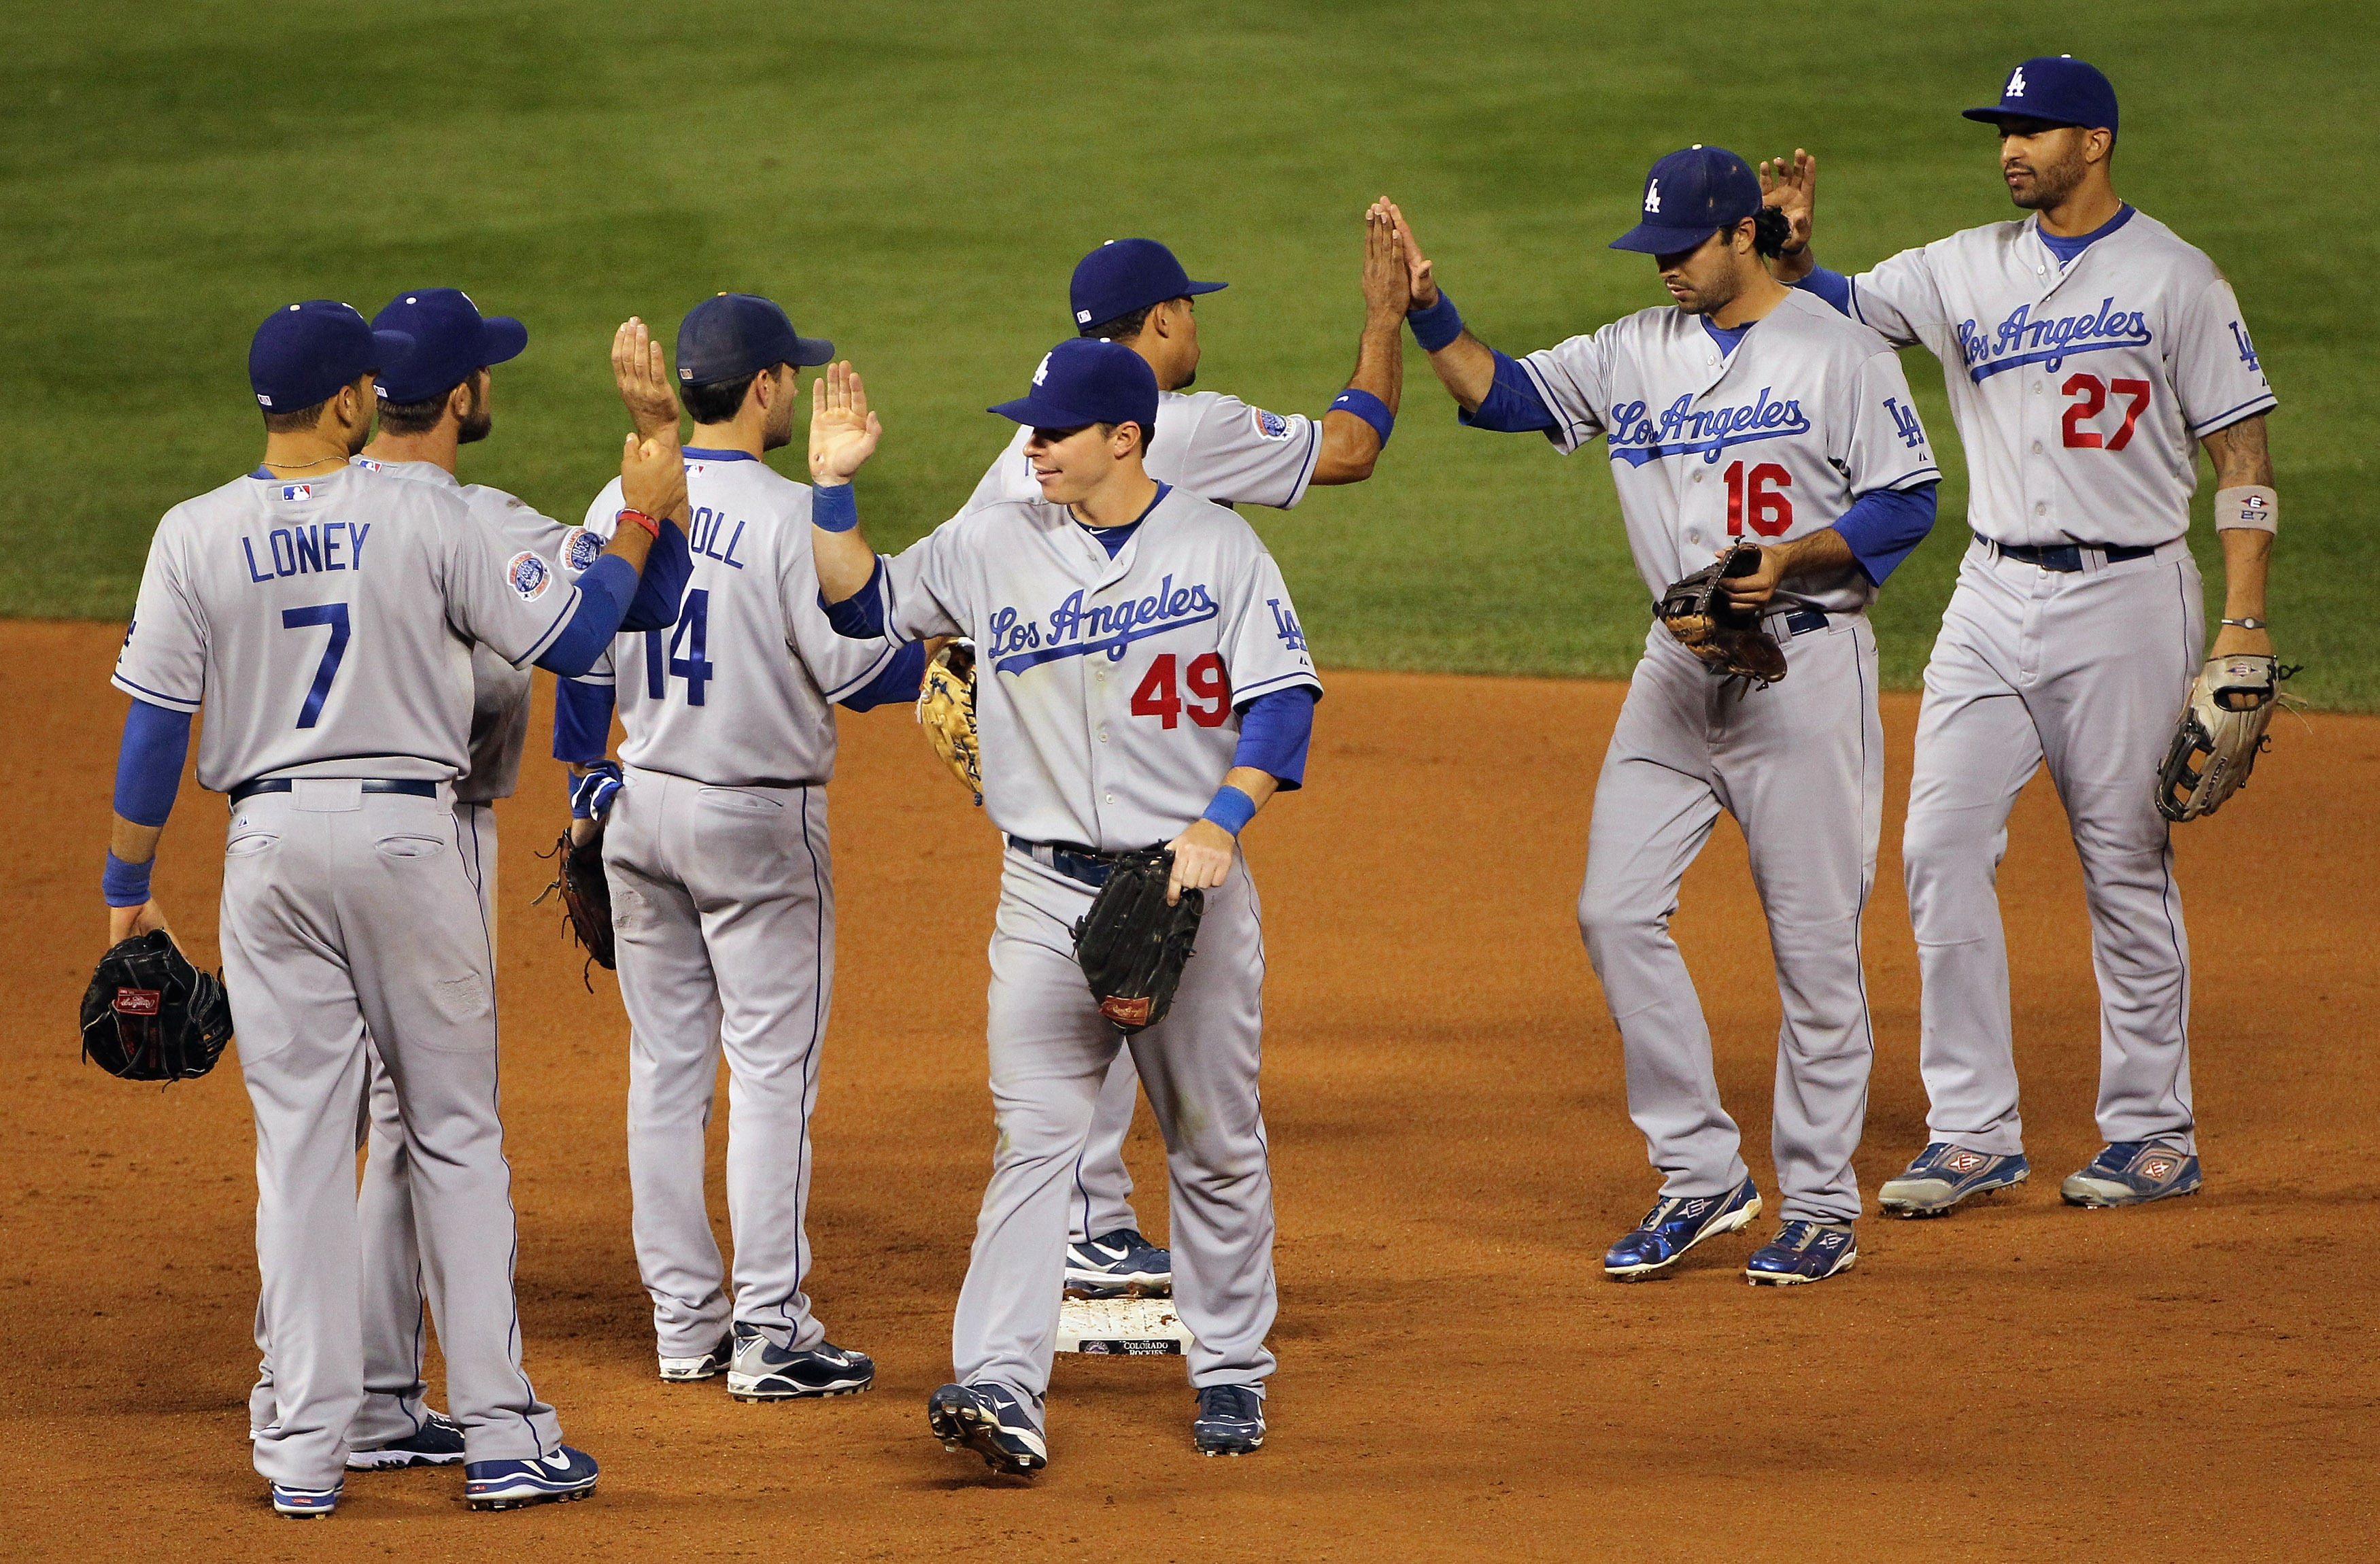 DENVER - SEPTEMBER 27:  The Los Angeles Dodgers celebrate their victory over the Colorado Rockies at Coors Field on September 25, 2010 in Denver, Colorado.The Dodgers defeated the Rockies 3-1.  (Photo by Doug Pensinger/Getty Images)